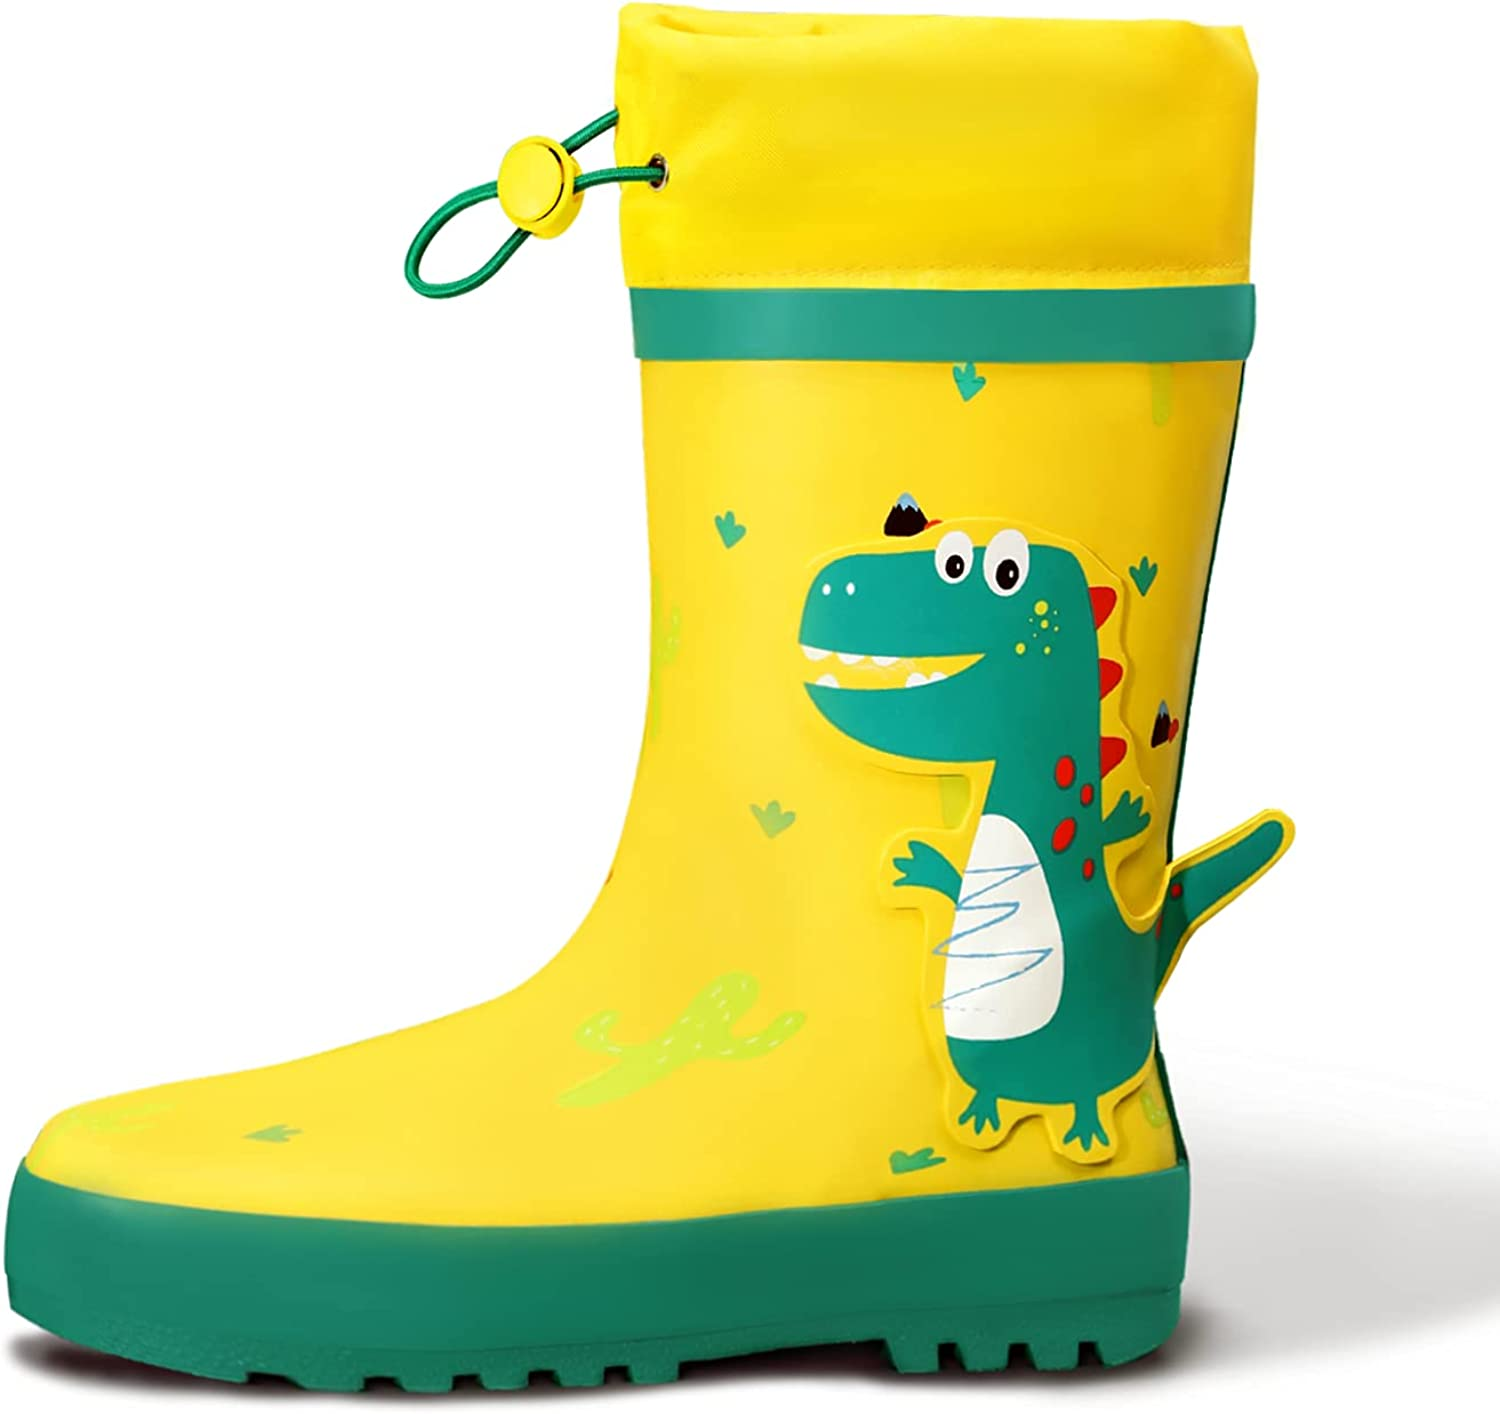 Gparllord Printed Waterproof Kids Rubber Rain Boots,Easy Pull On Toddler Rain Shoes